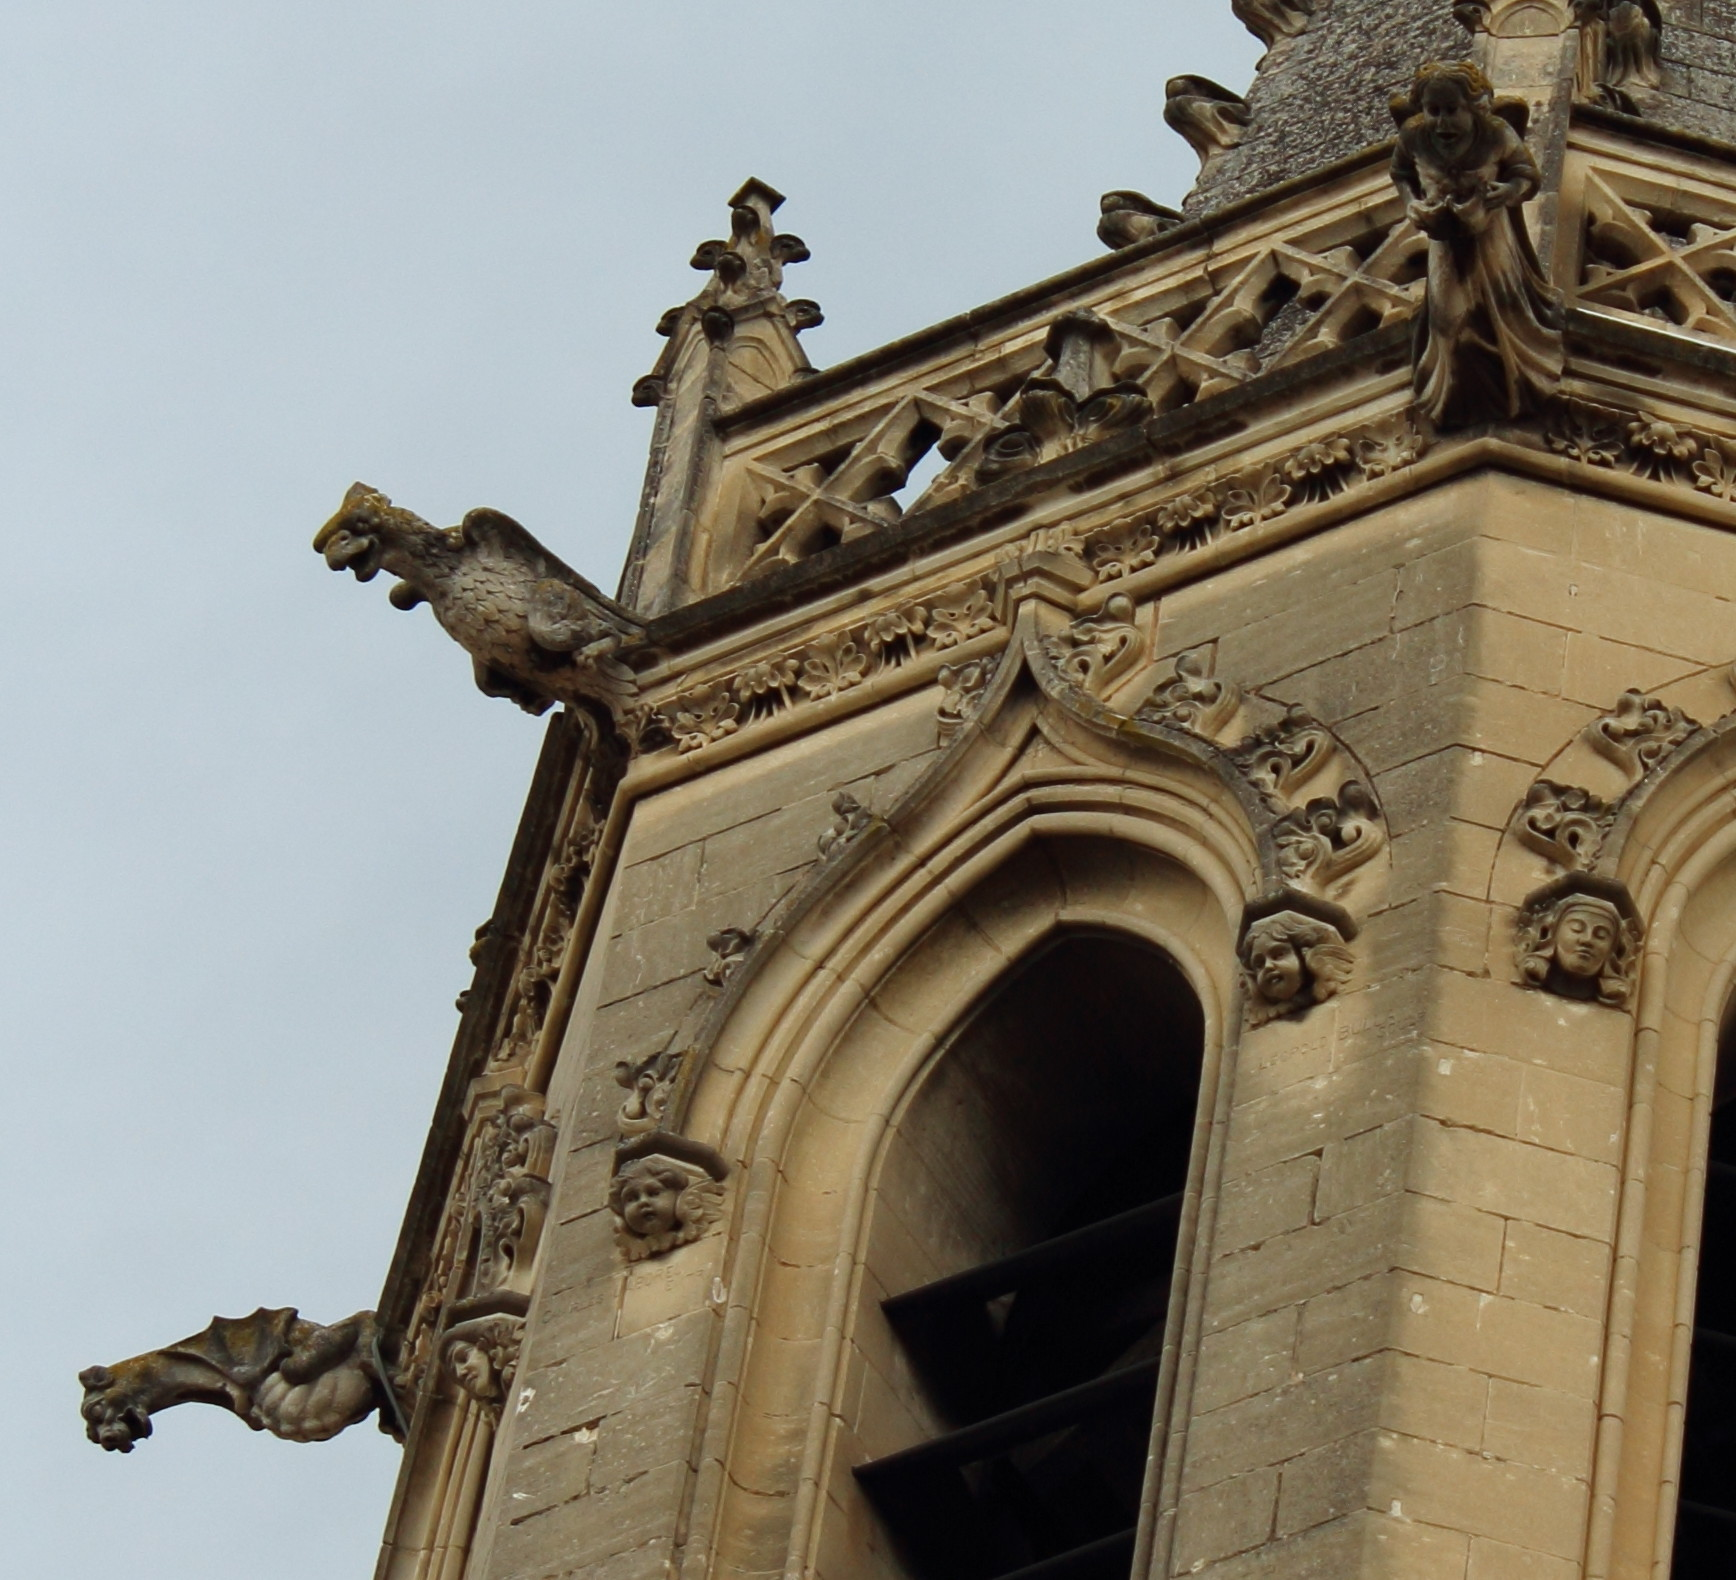 Visiting Provence: Carpentras, blog post by Aspasia S. Bissas